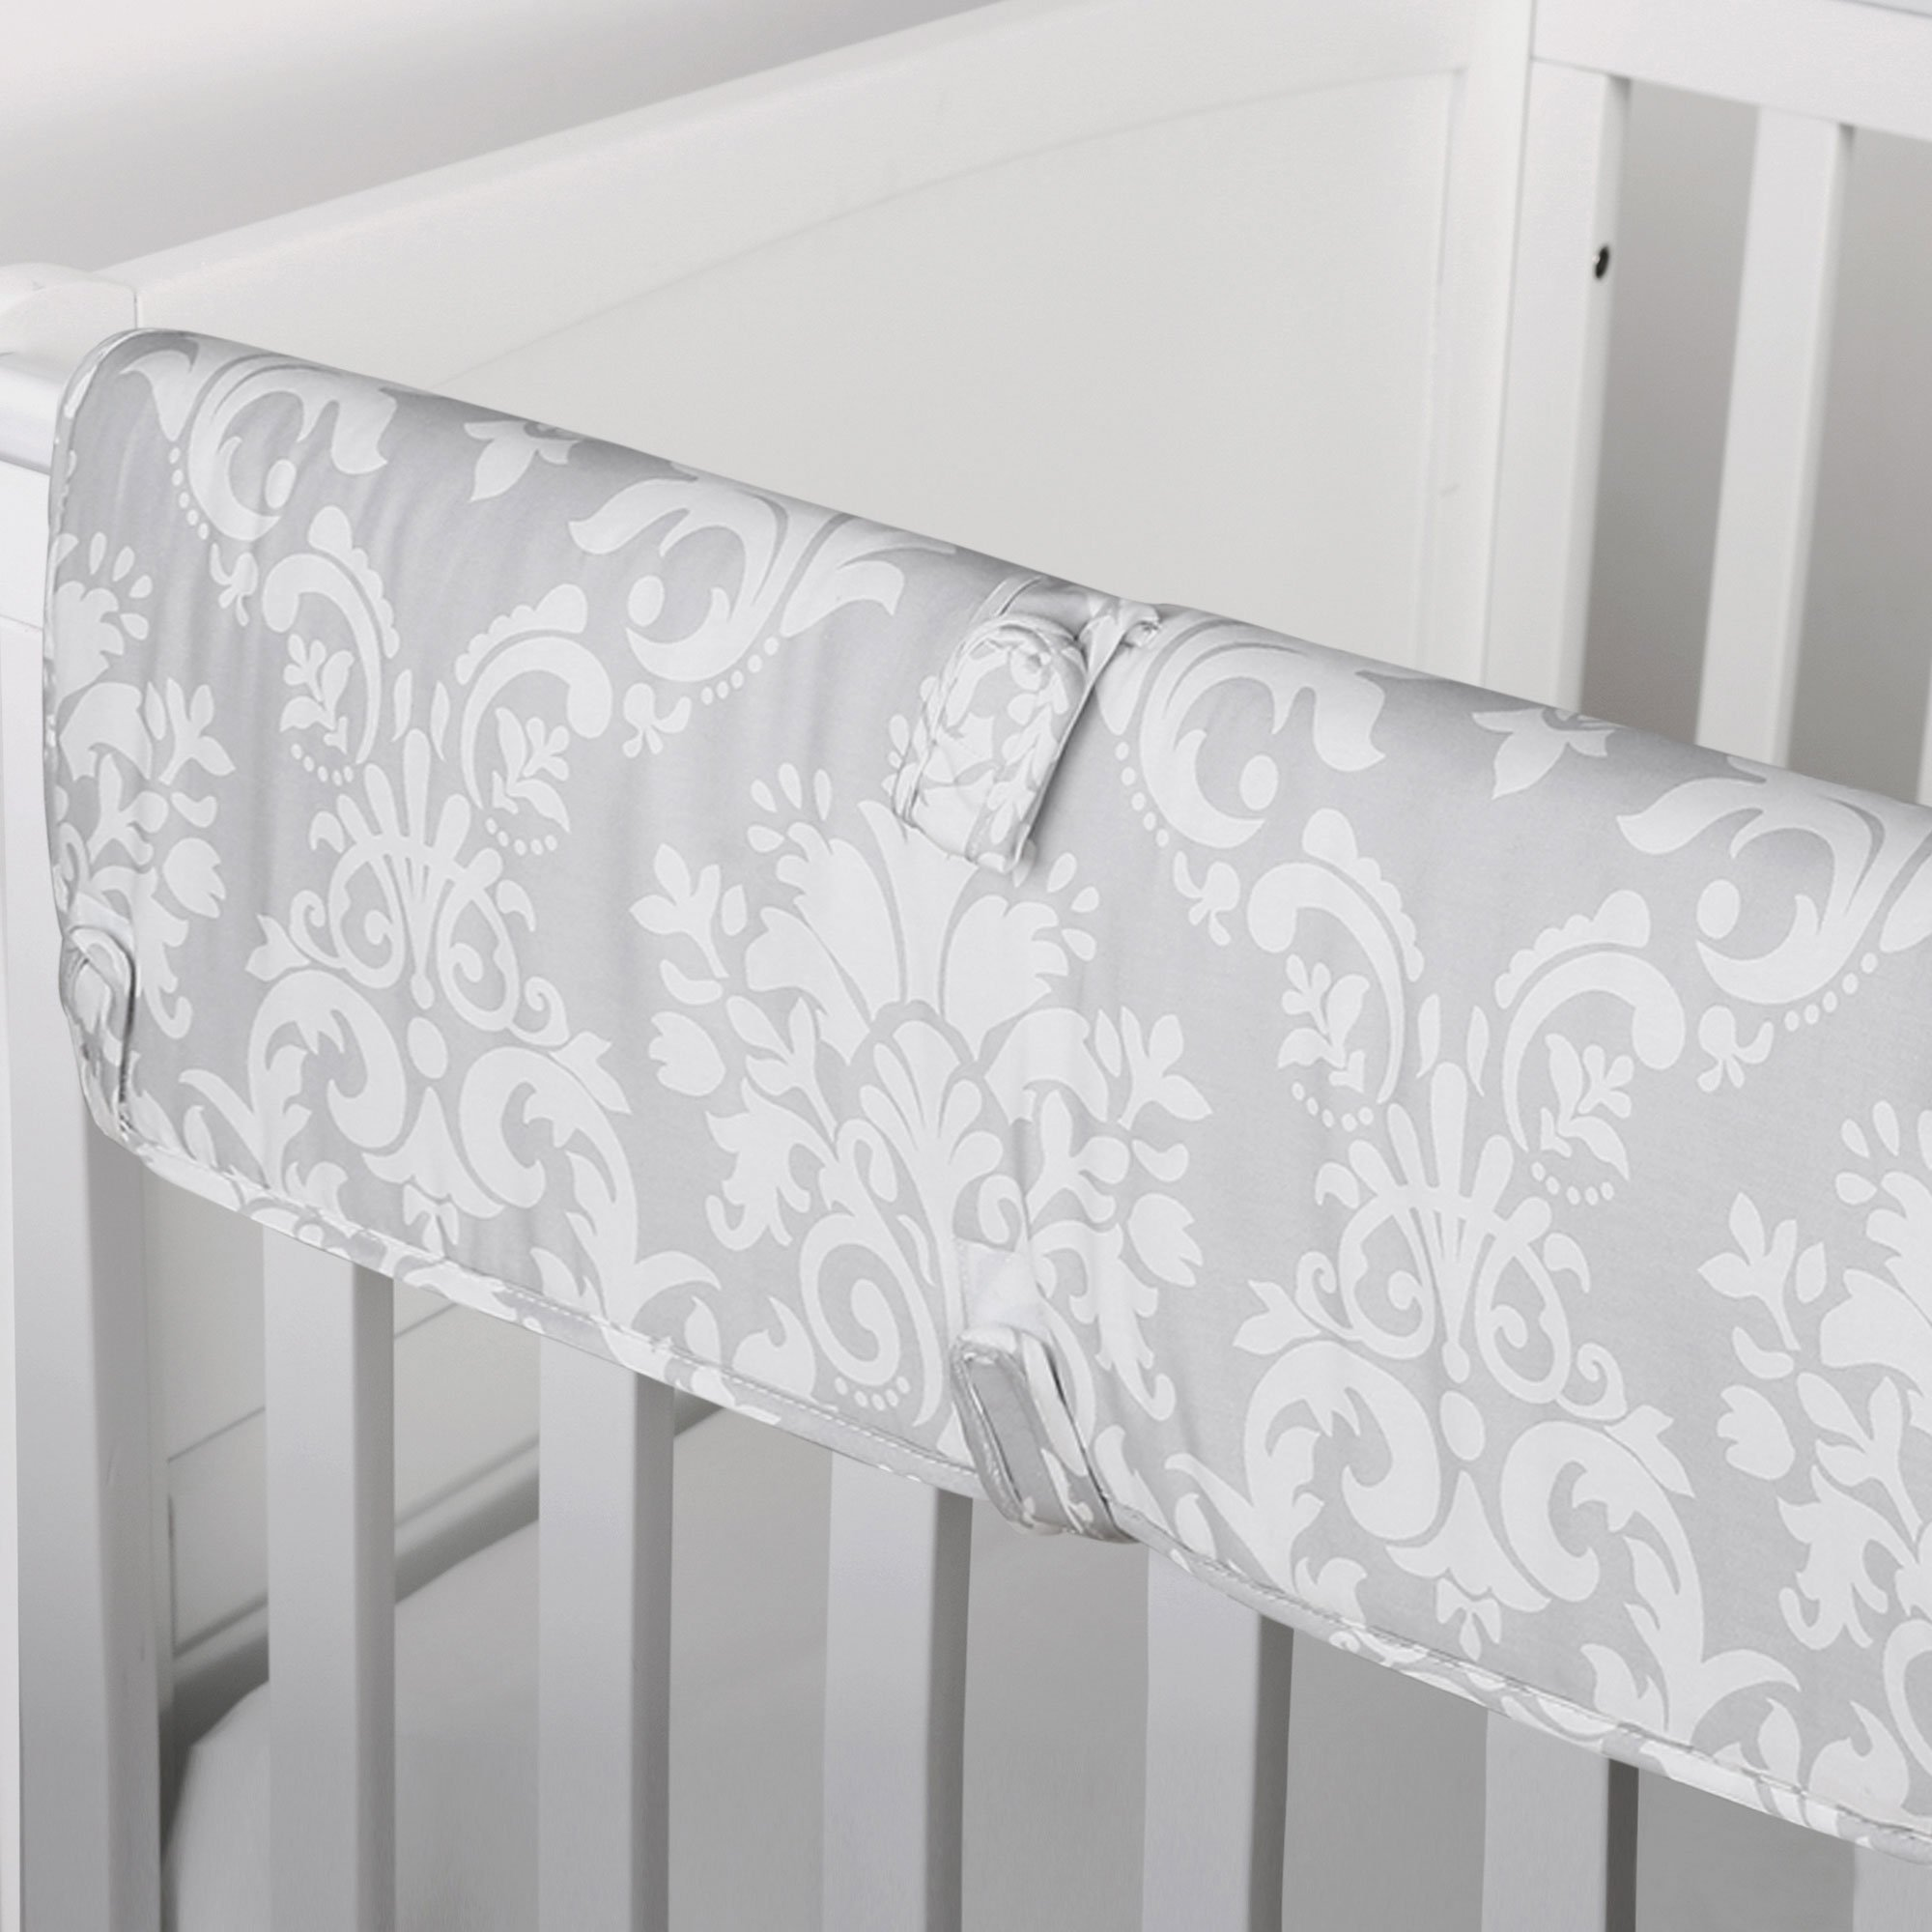 Grey Damask Print 100% Cotton Padded Crib Rail Guard by The Peanut Shell by The Peanut Shell